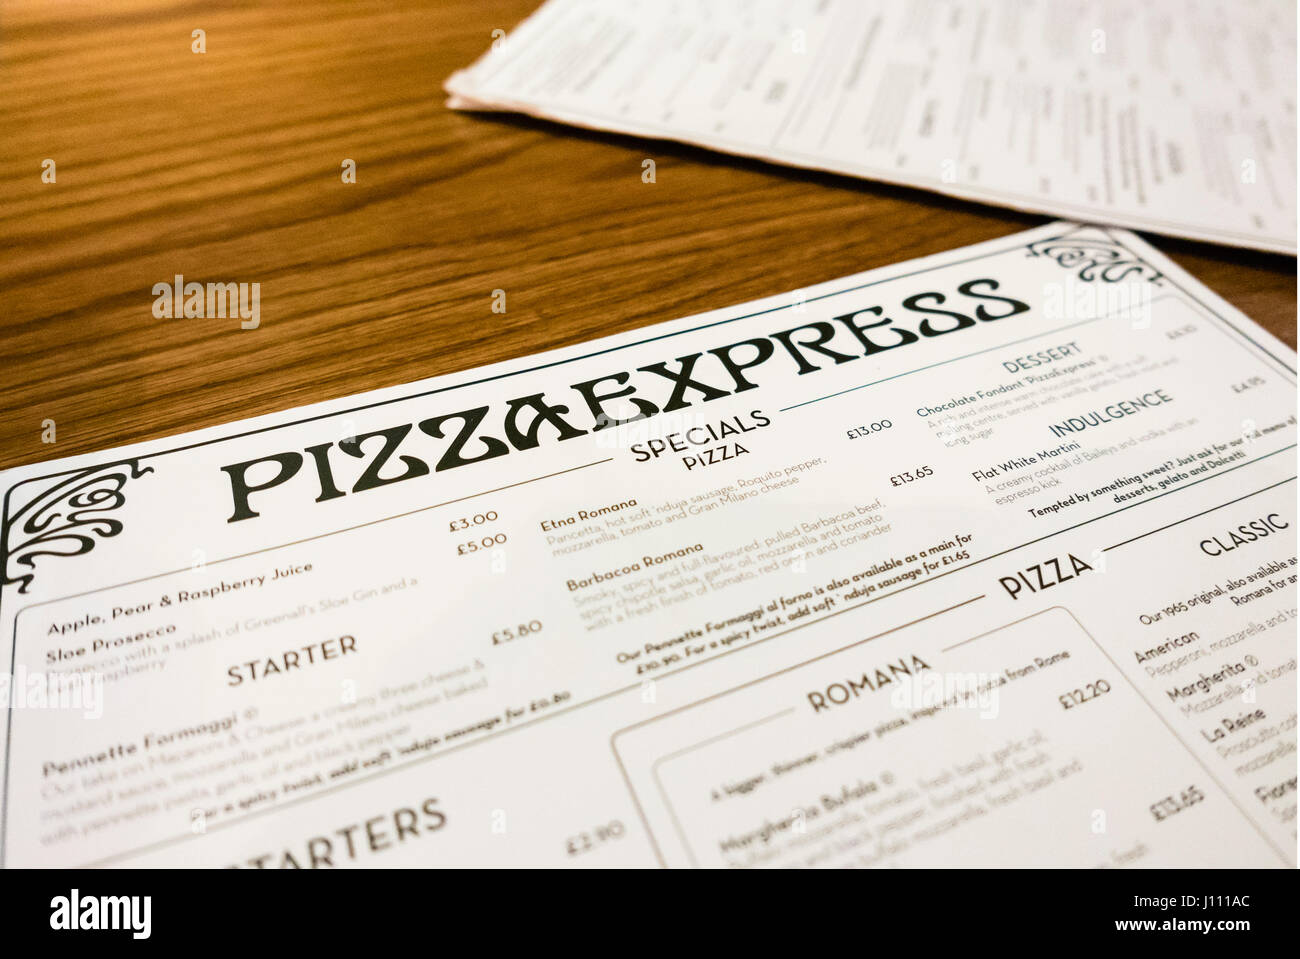 Food Pizza Express Uk Stock Photos Food Pizza Express Uk